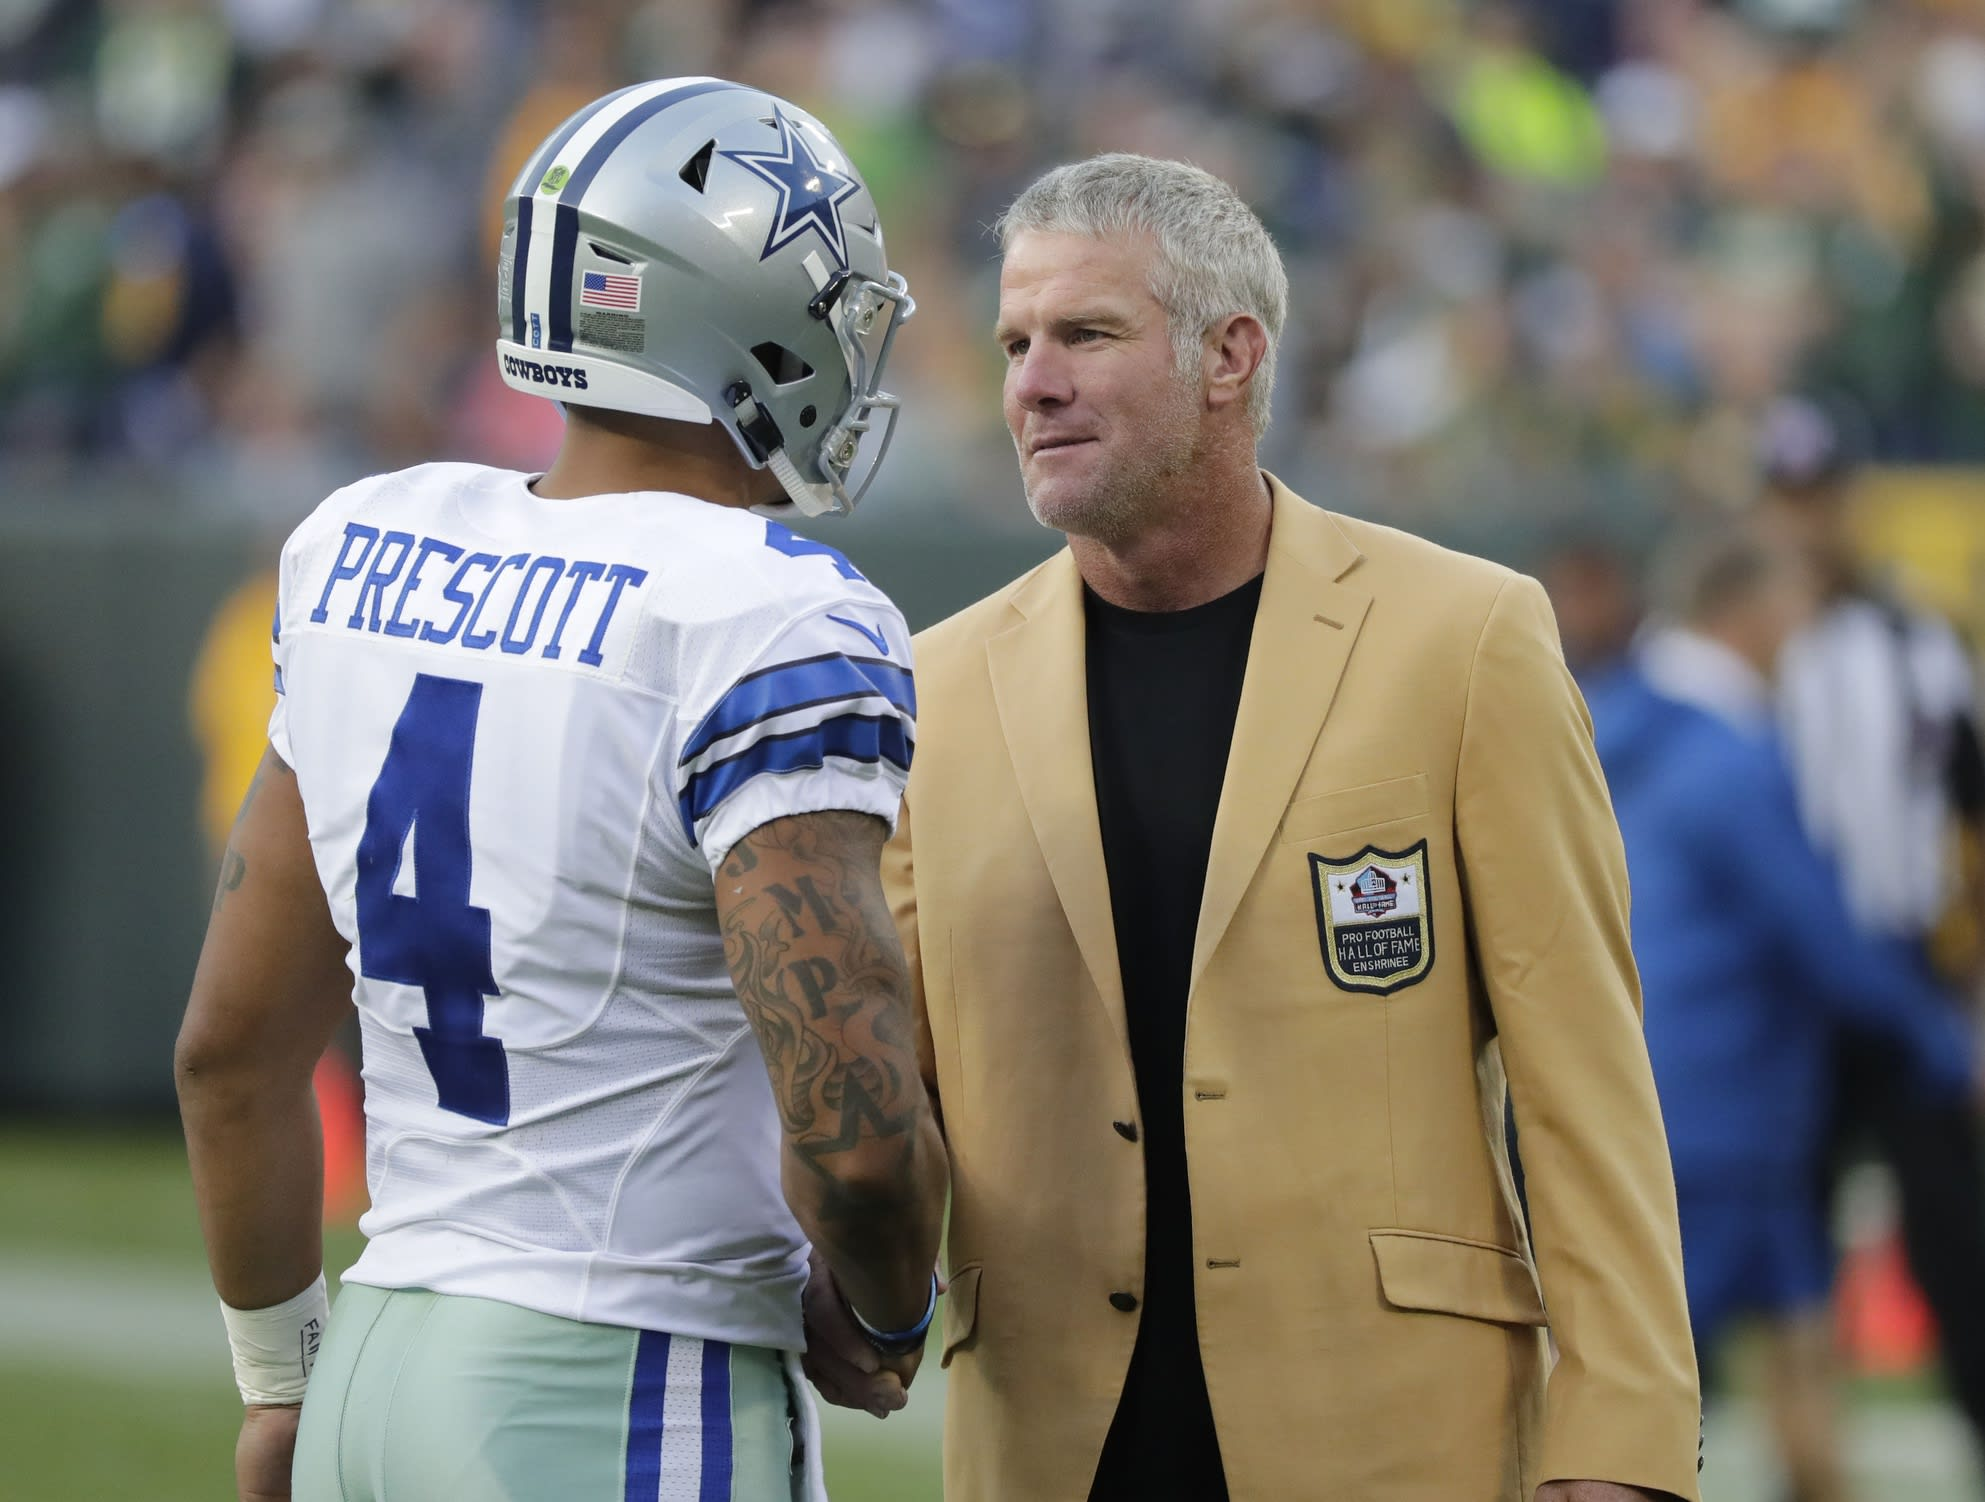 brett favre is ready to crown tom brady the g o a t says the dak prescott brett favre cowboys packers 2016 lambeau field